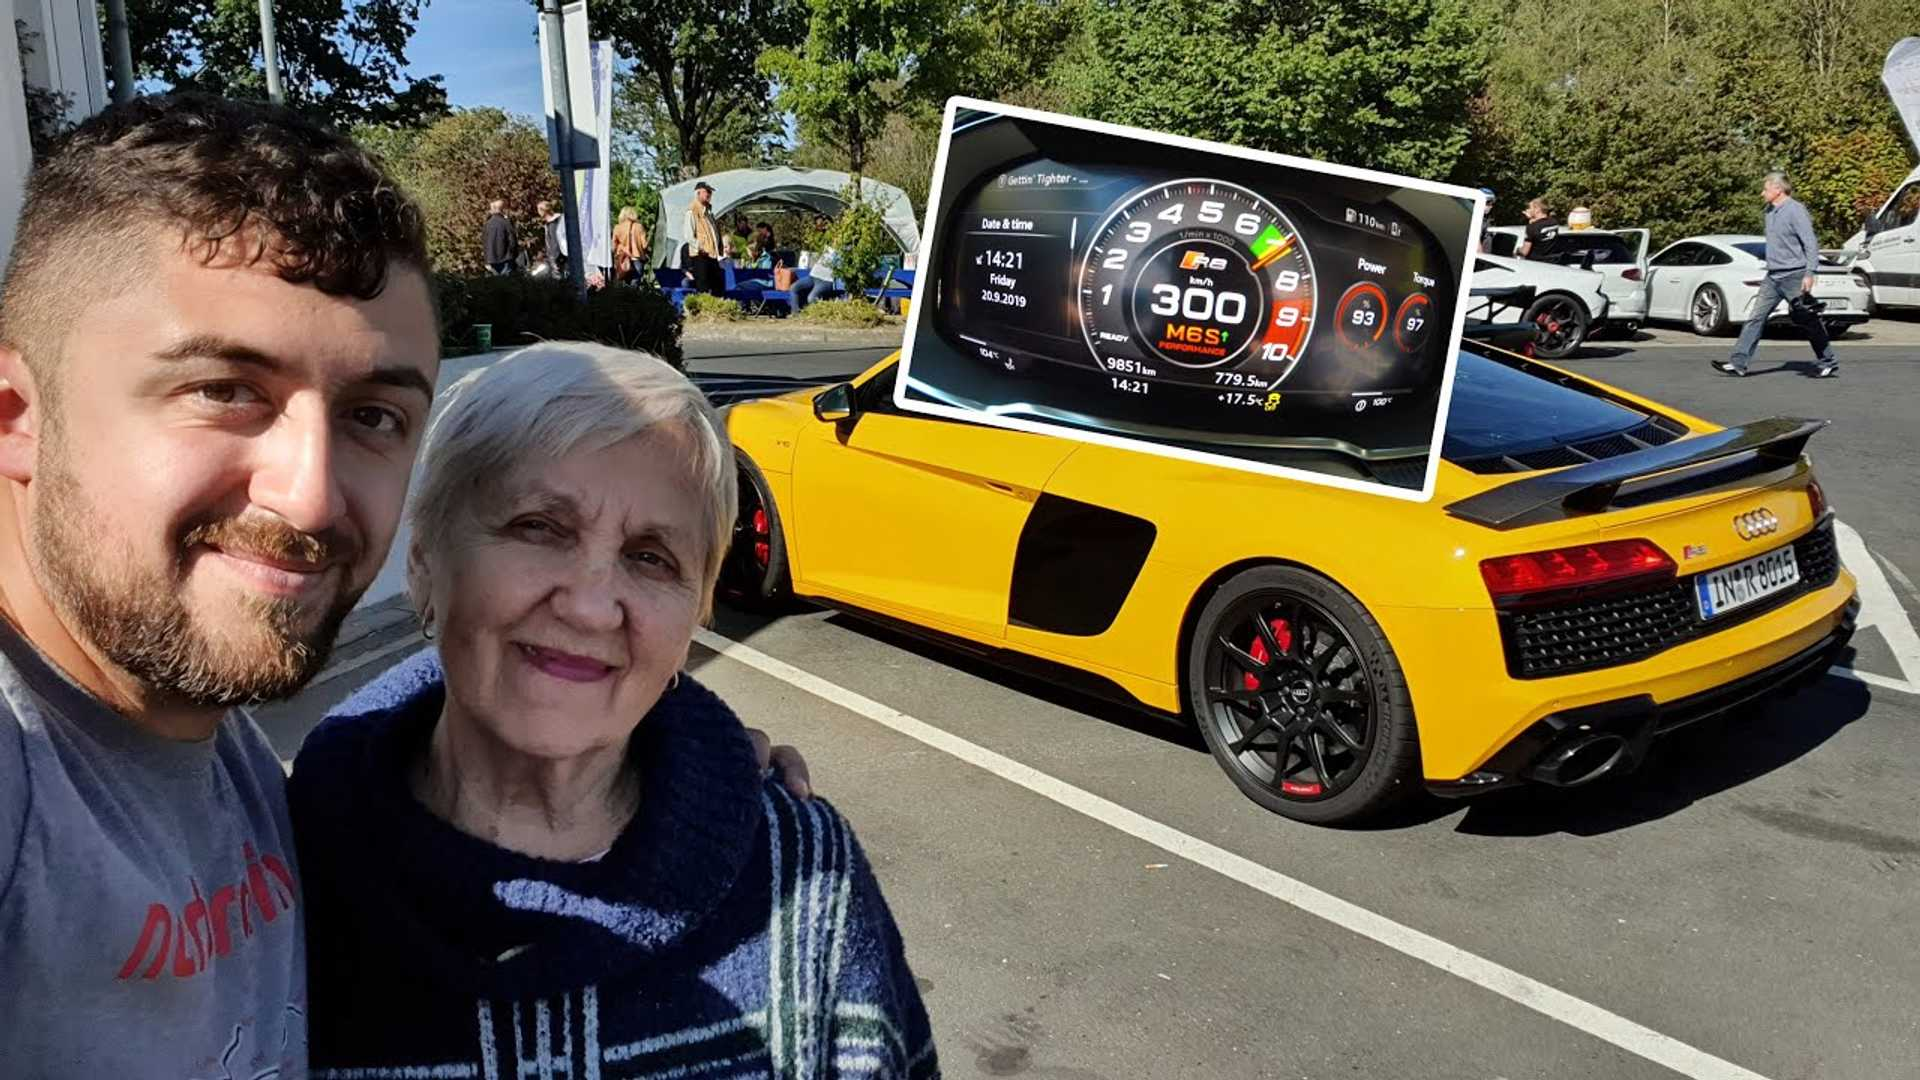 80-year-old grandma unfazed at 186 mph on the Nurburgring